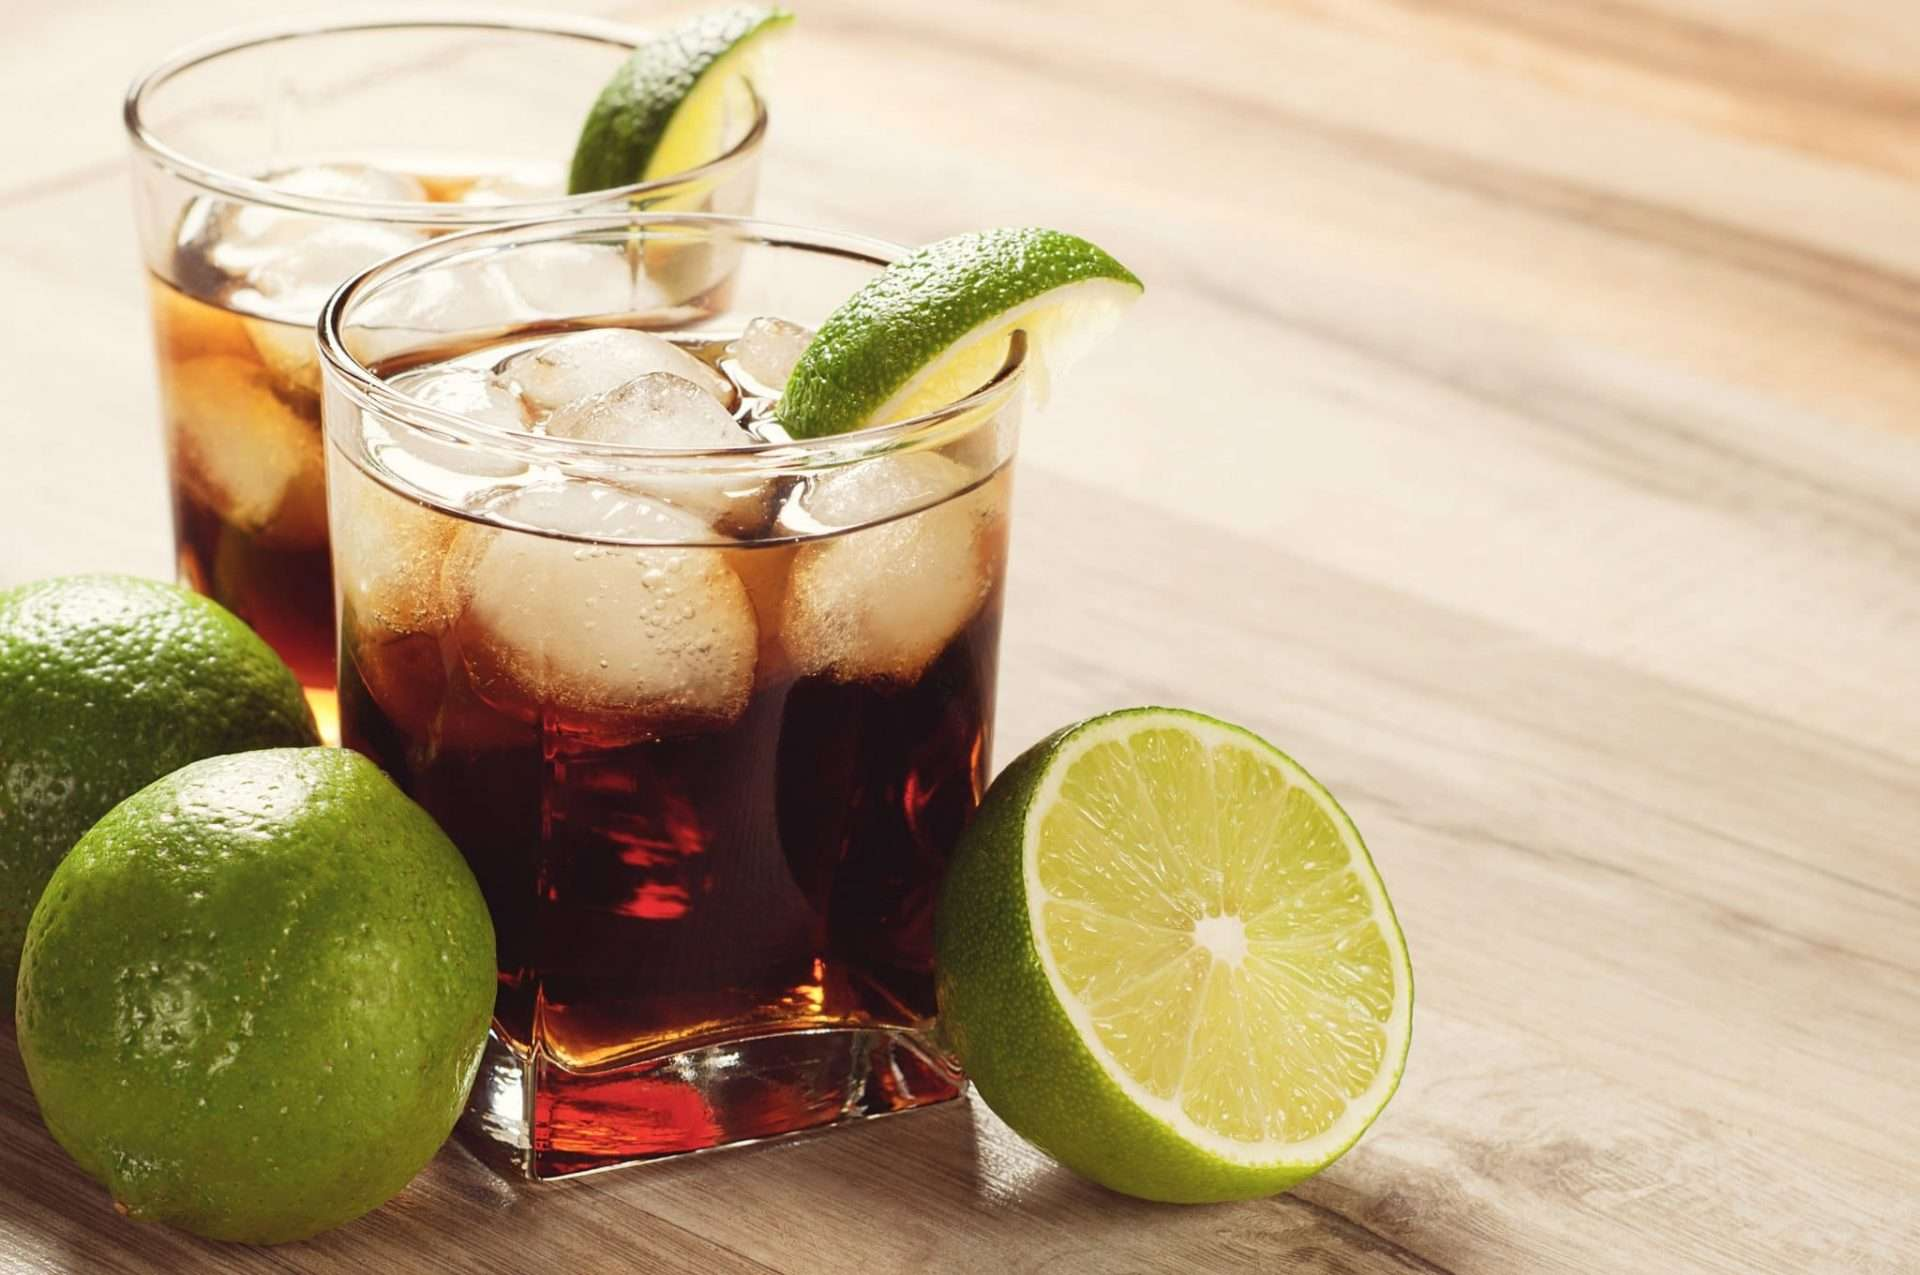 Rum and coke cocktail